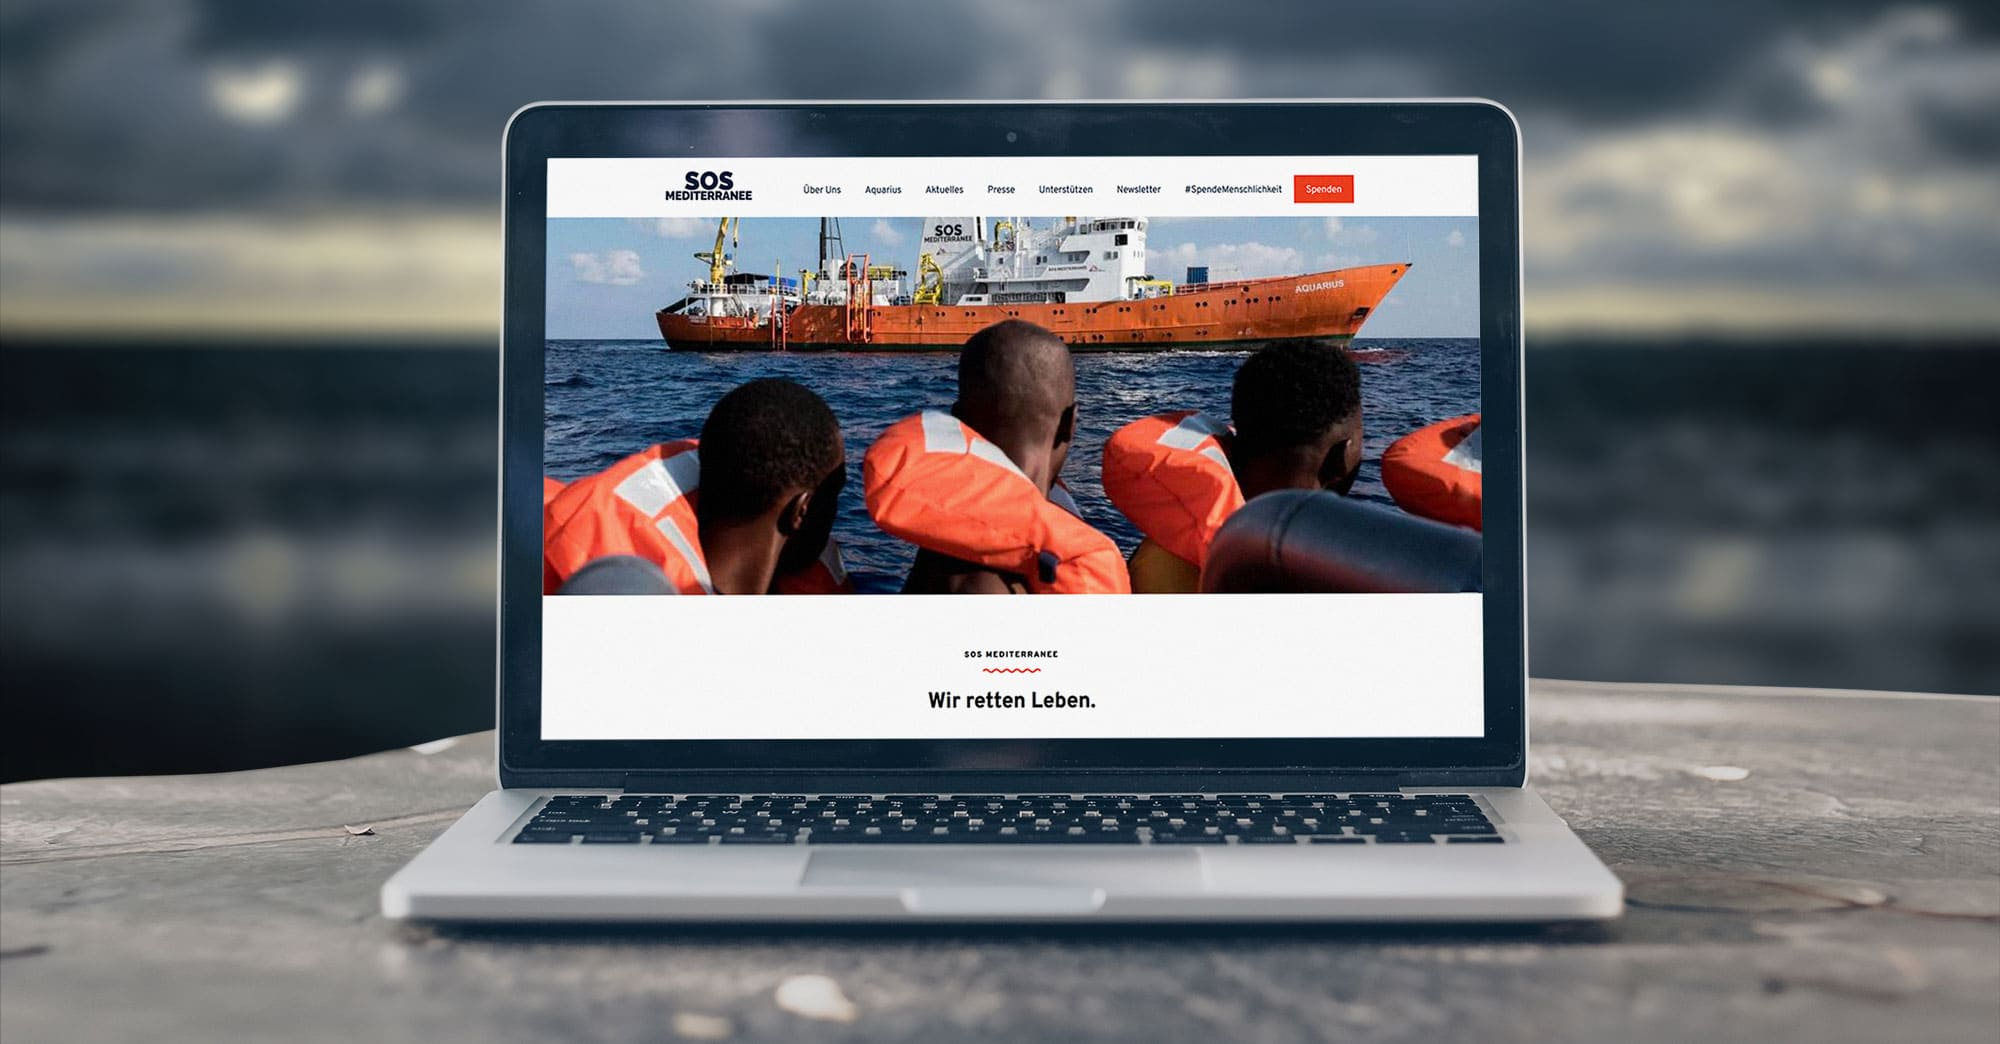 Web design for humanitarian organisation